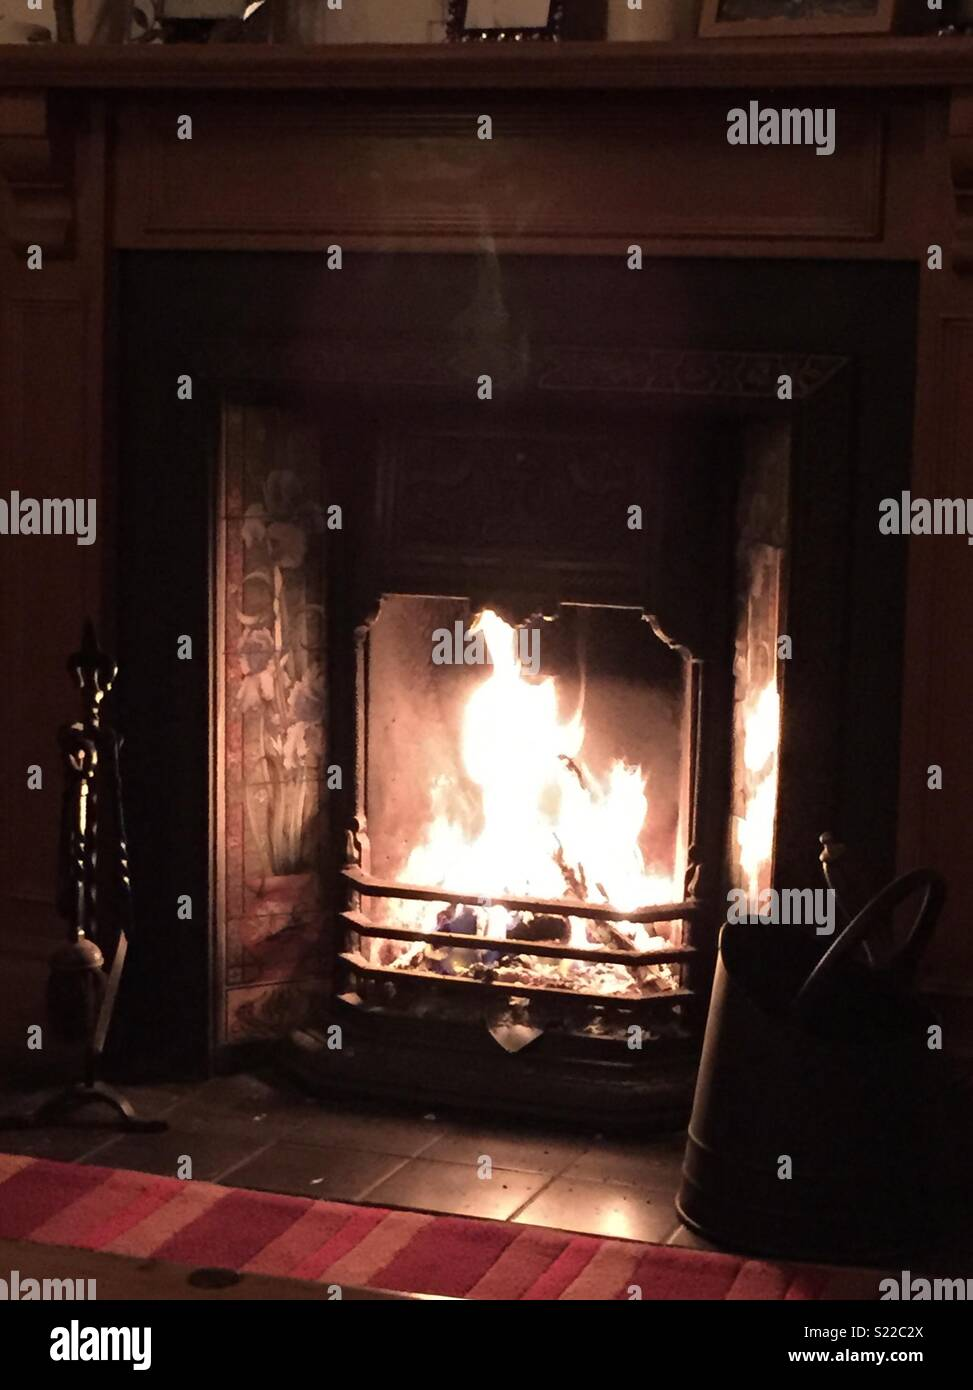 Hygge fireplace at home - Stock Image